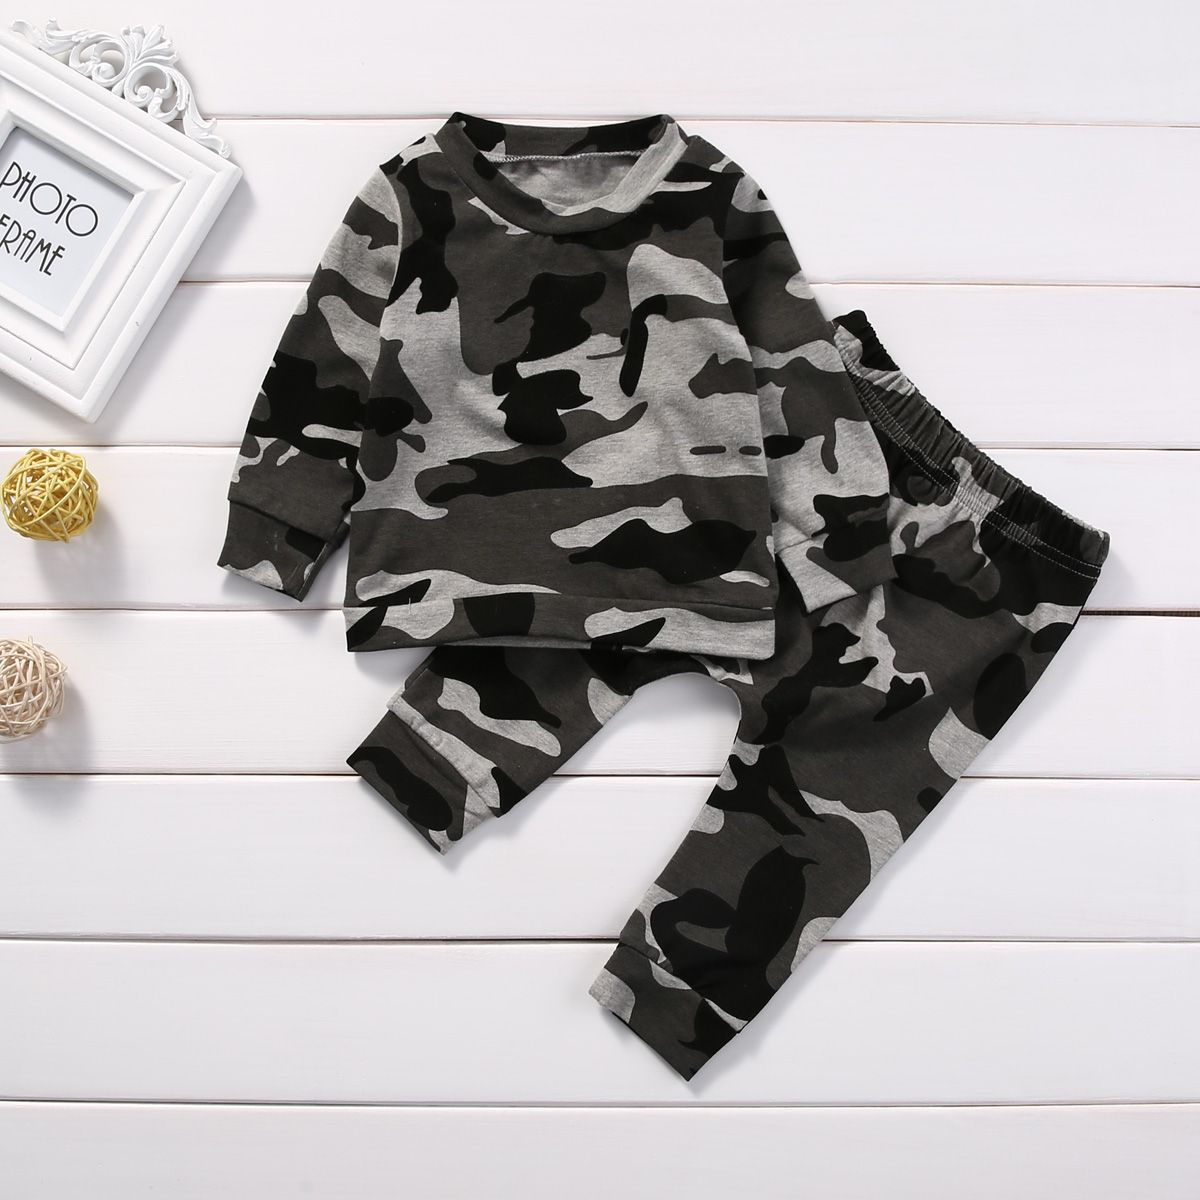 6a2c2d01b5b5f Cool 2pcs new baby clothing set Toddler Infant Camouflage Baby Boy Girl  Clothes T-shirt Tops+Pants Outfits Set - $15.09 - Buy it Now!